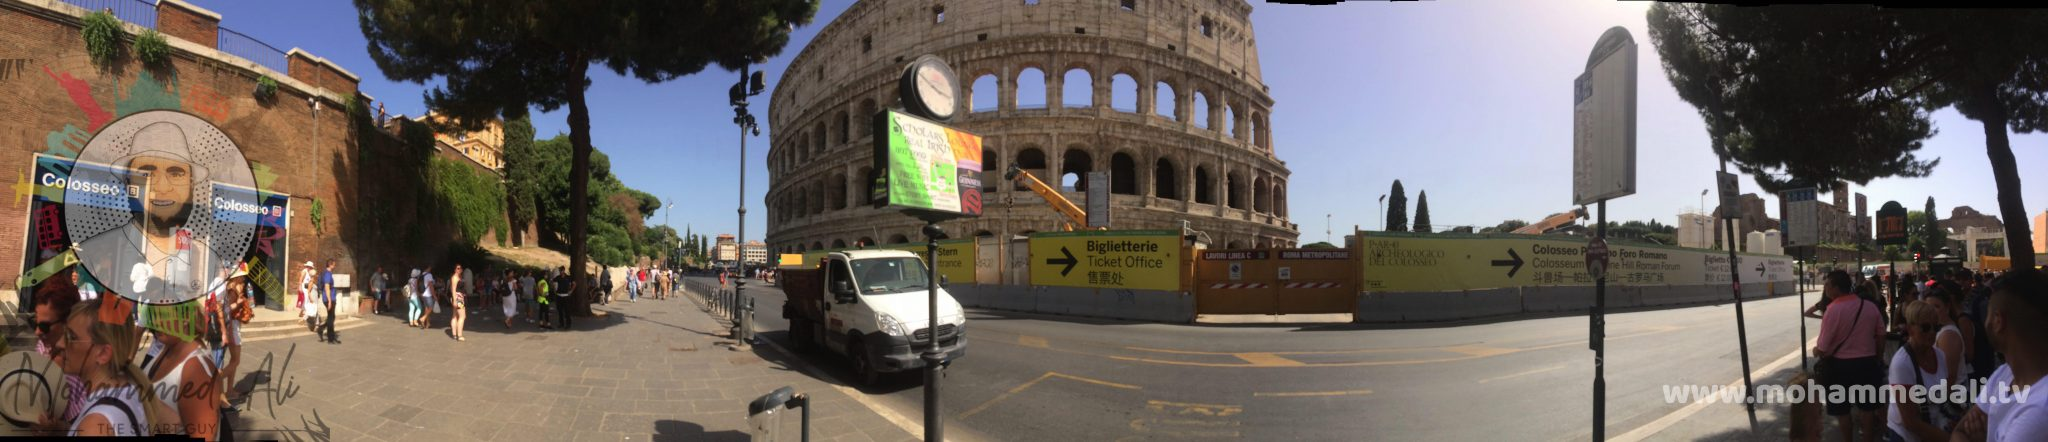 Panoramic view of the iconic Colosseum in Rome, Italy